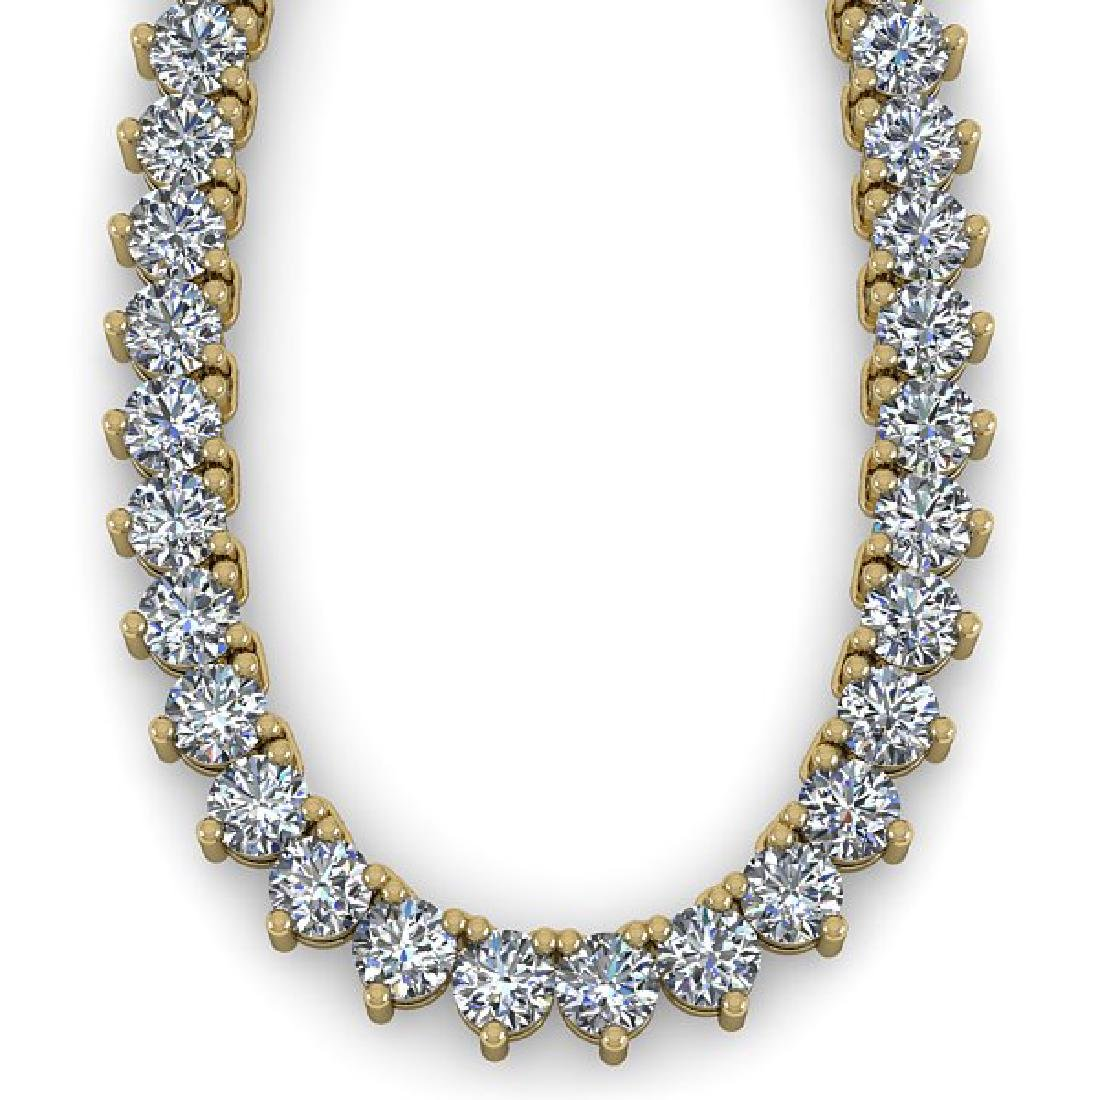 53 CTW Solitaire SI Diamond Necklace 18K Yellow Gold - 2